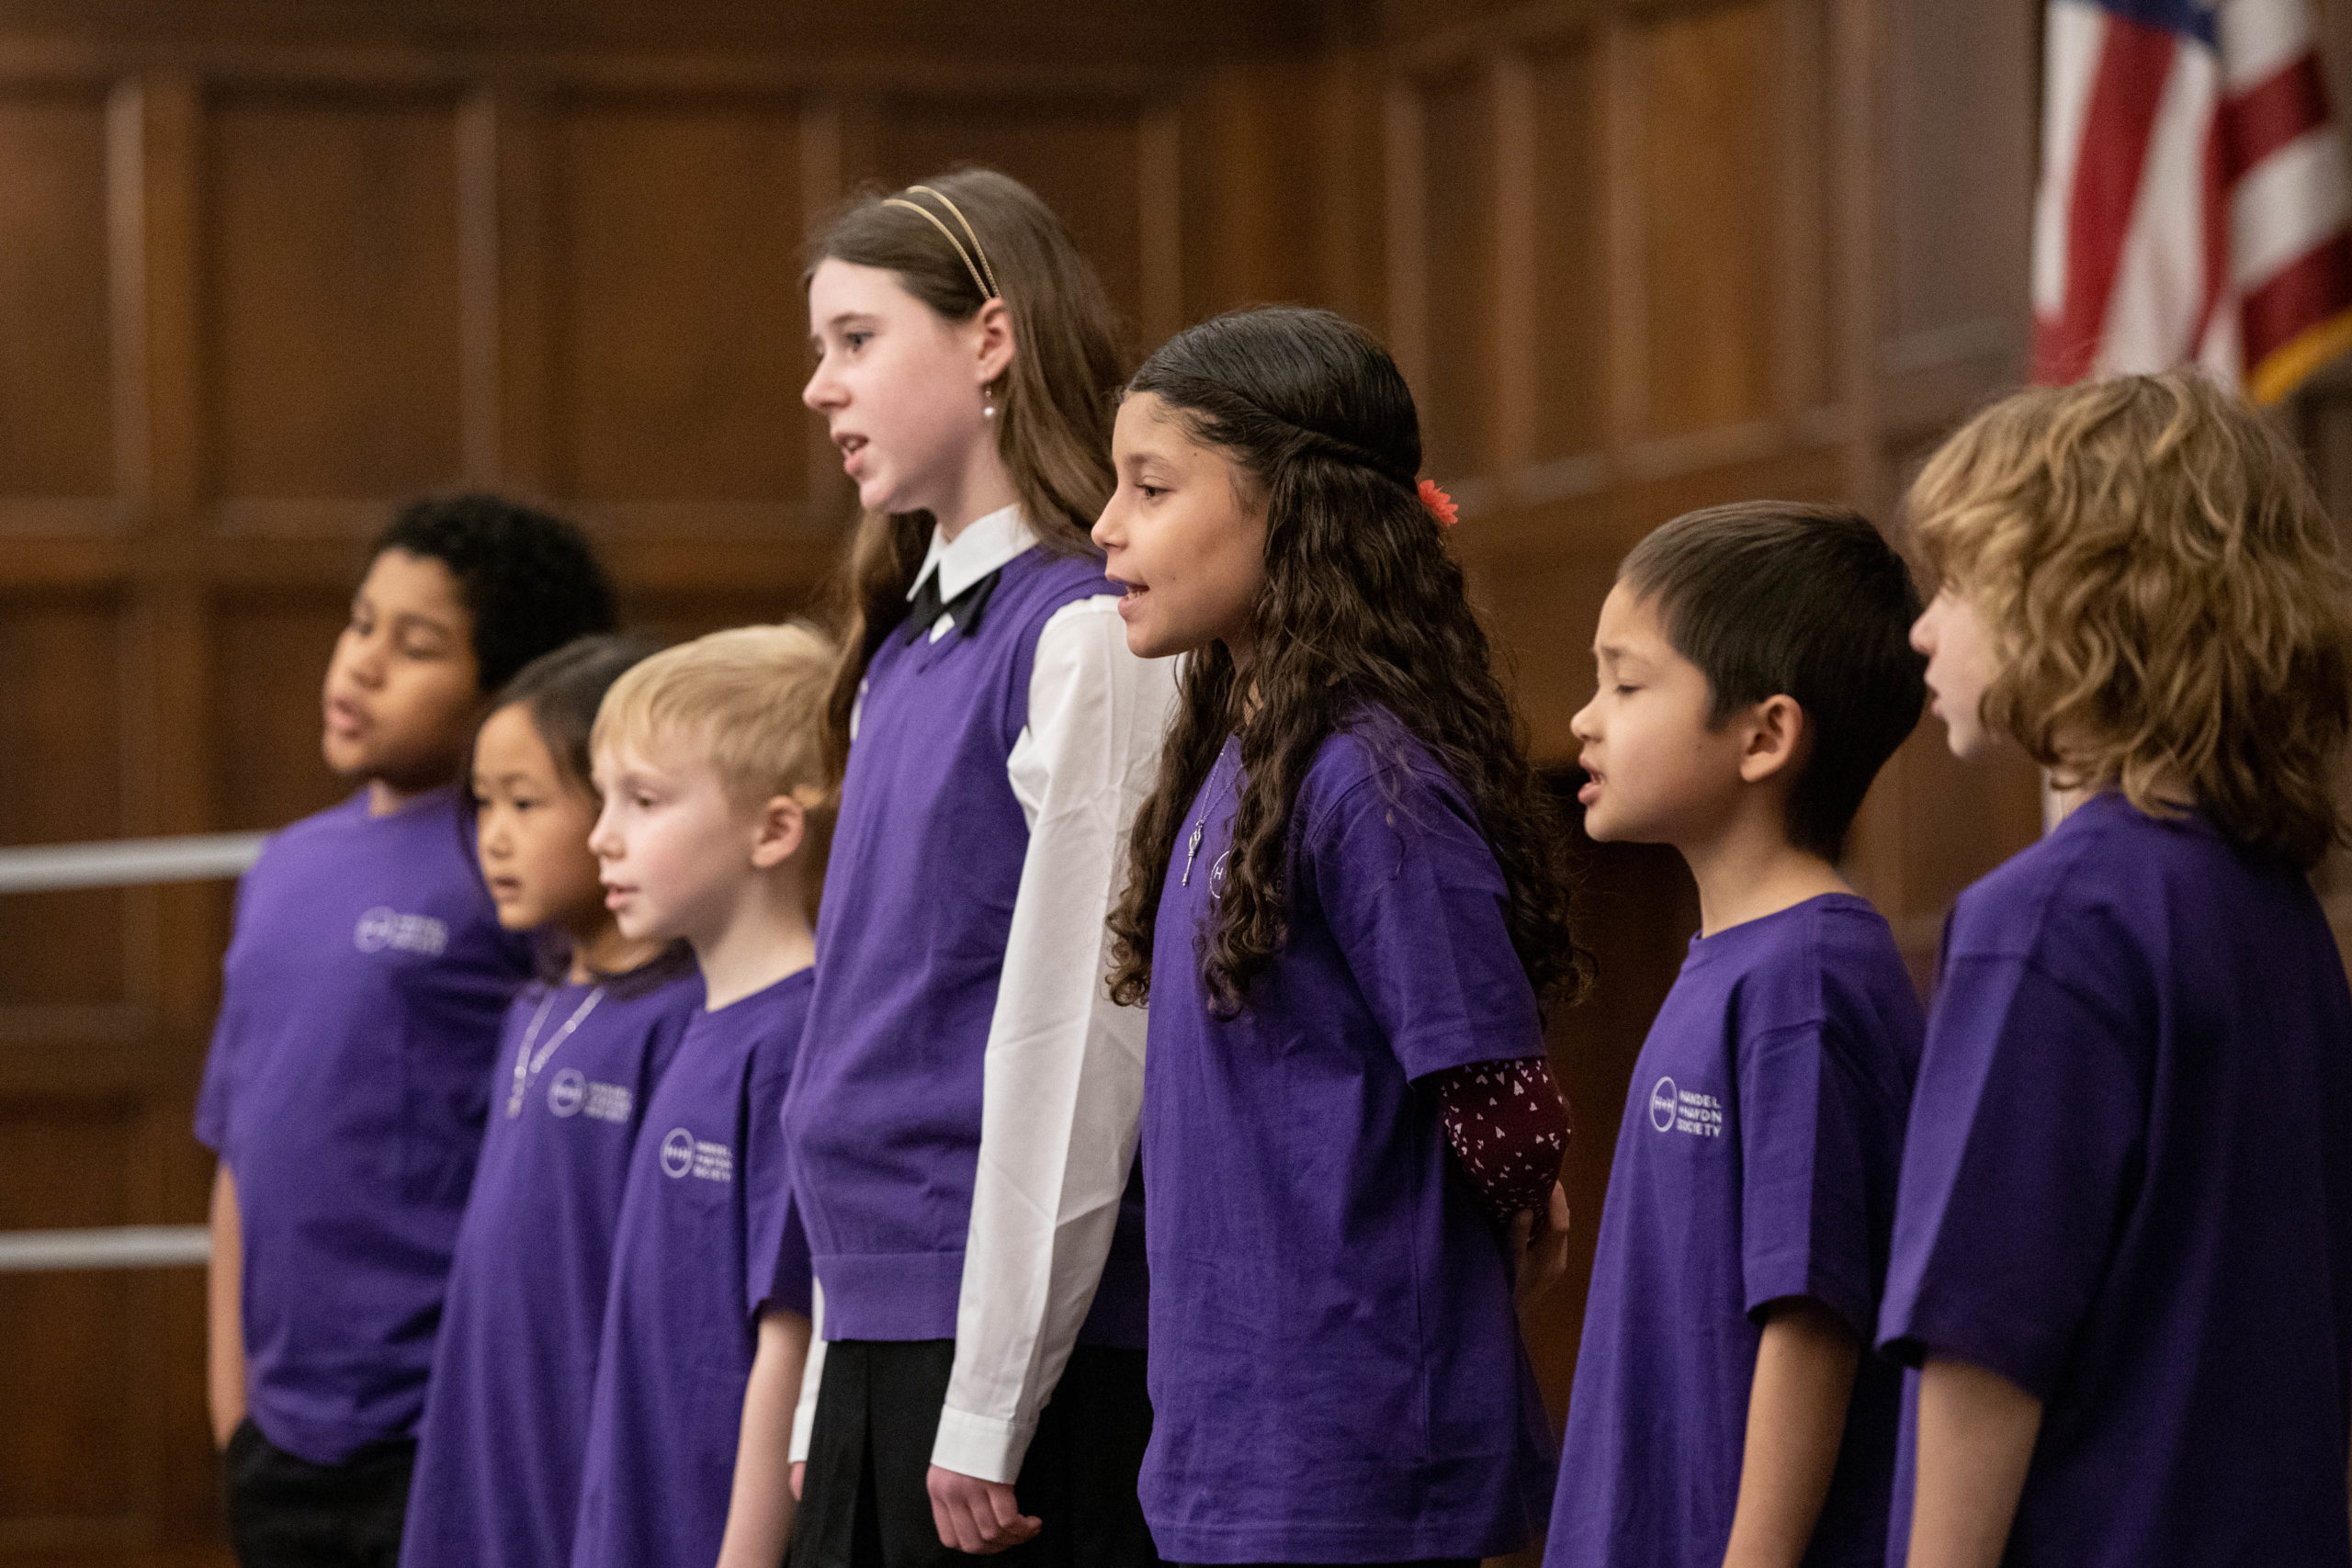 Young choral students singing